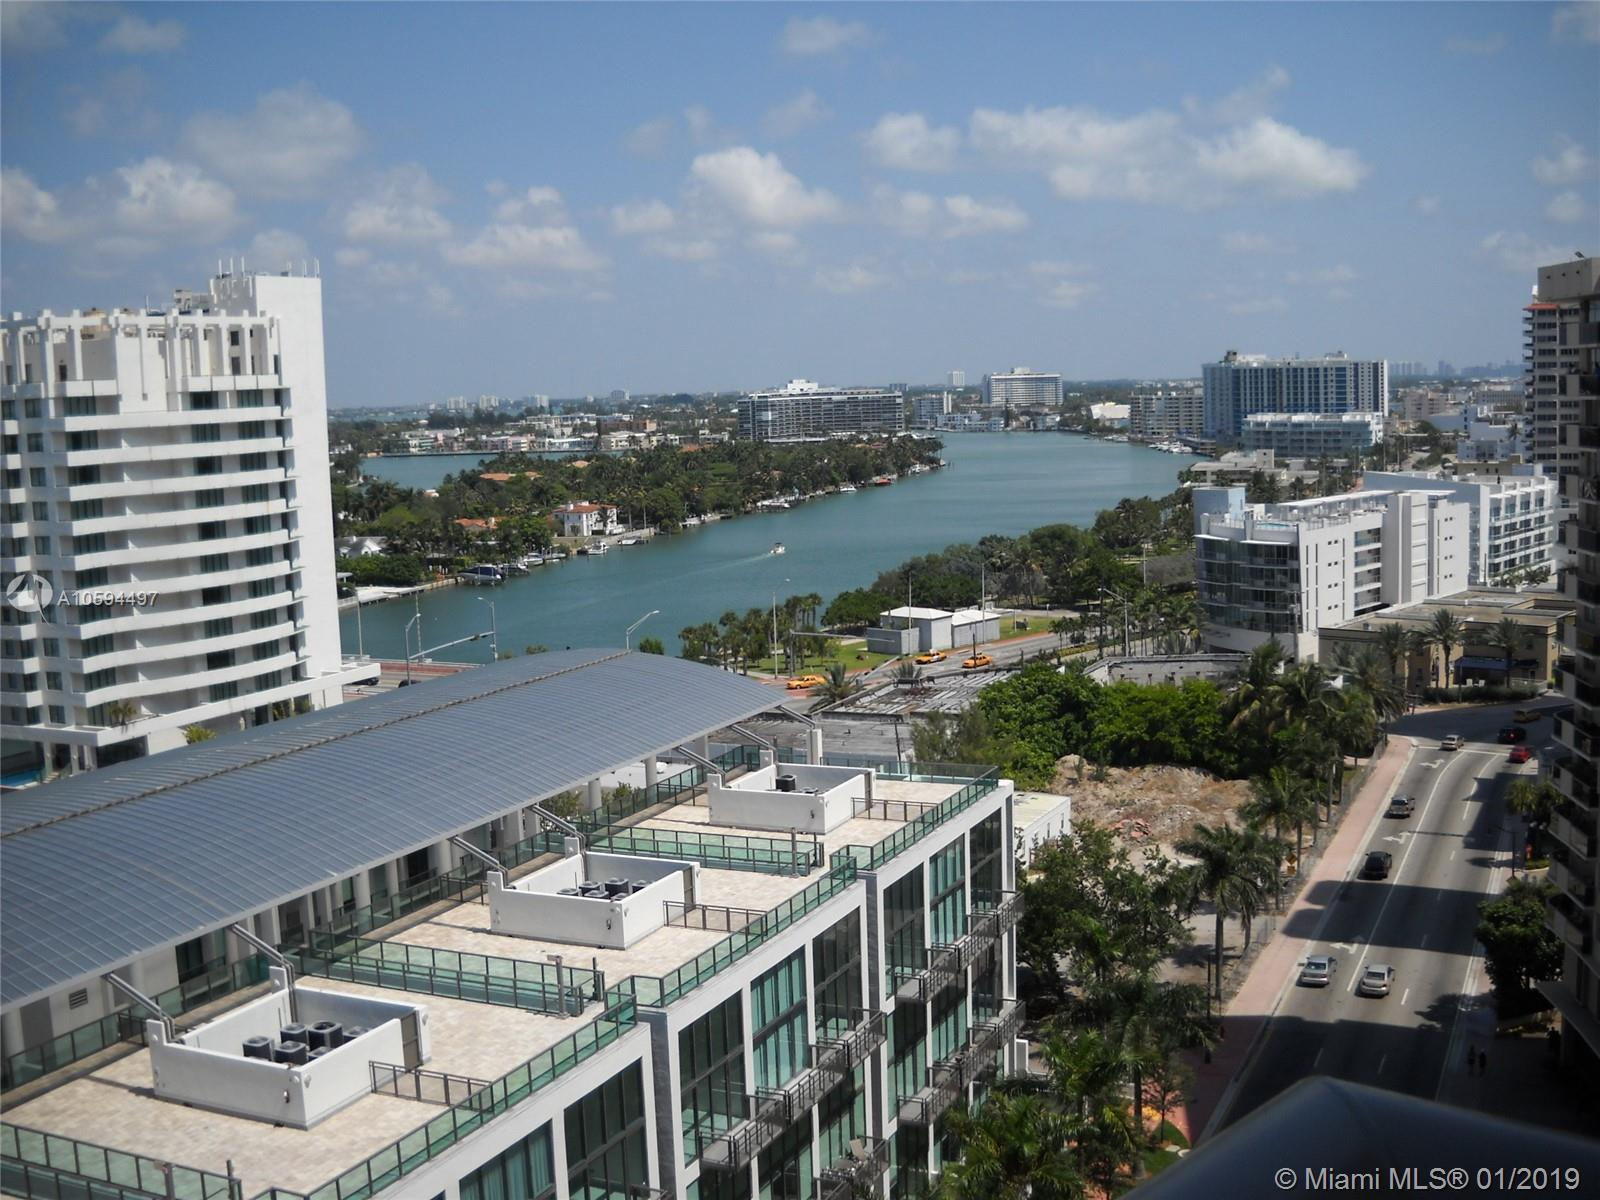 Maison Grande #1628 - 6039 Collins Ave #1628, Miami Beach, FL 33140